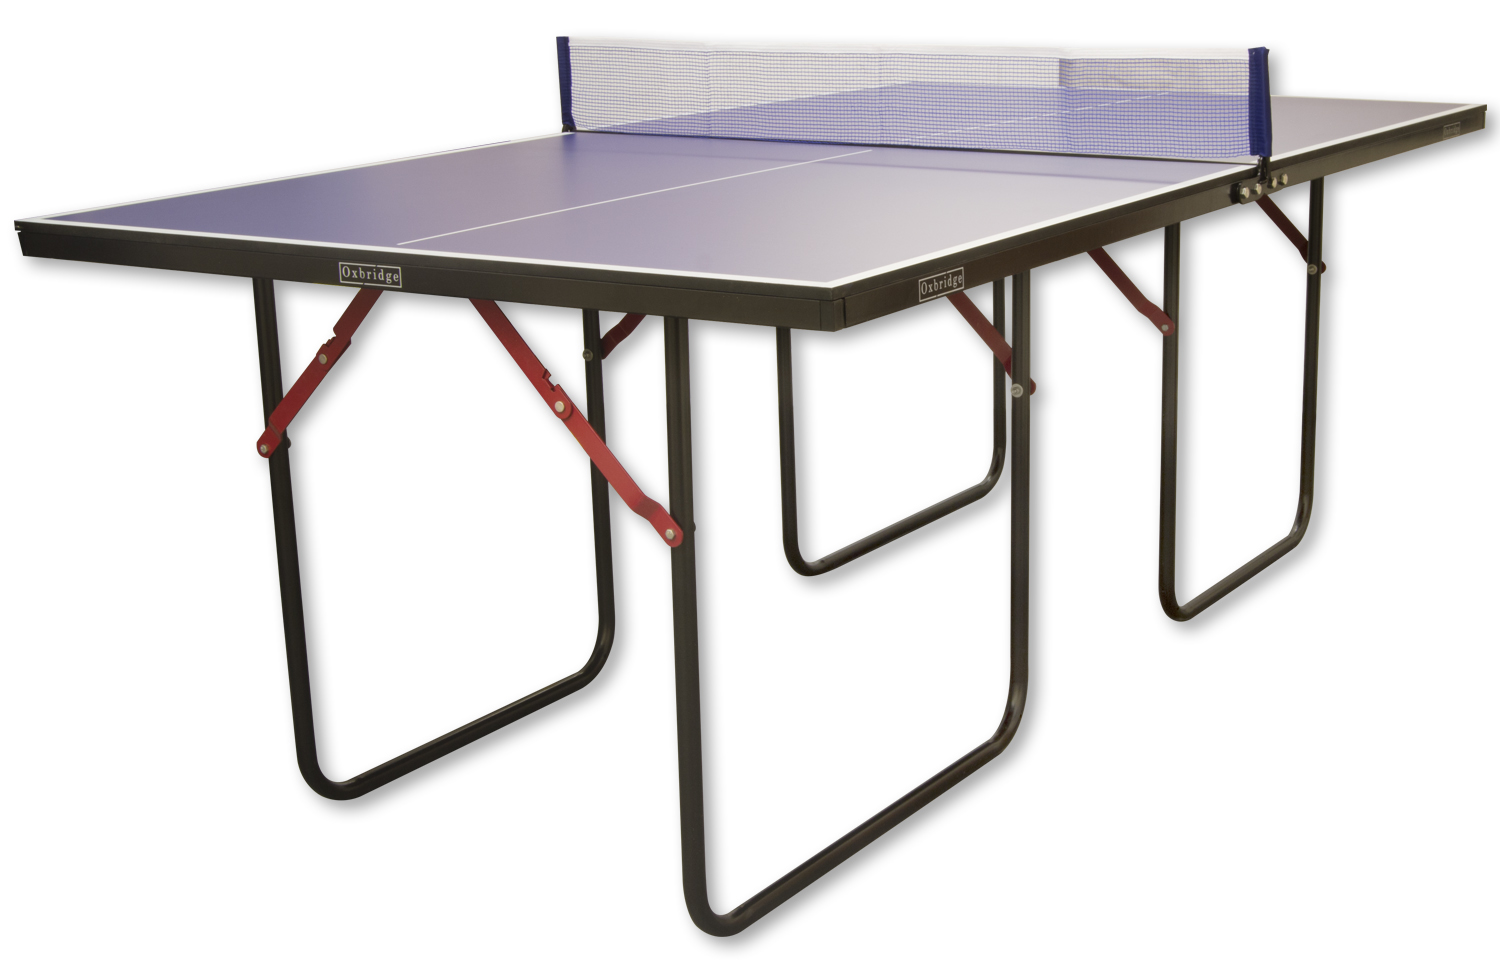 Oxbridge 3 4 size table tennis table table tennis - Measurements of a table tennis table ...